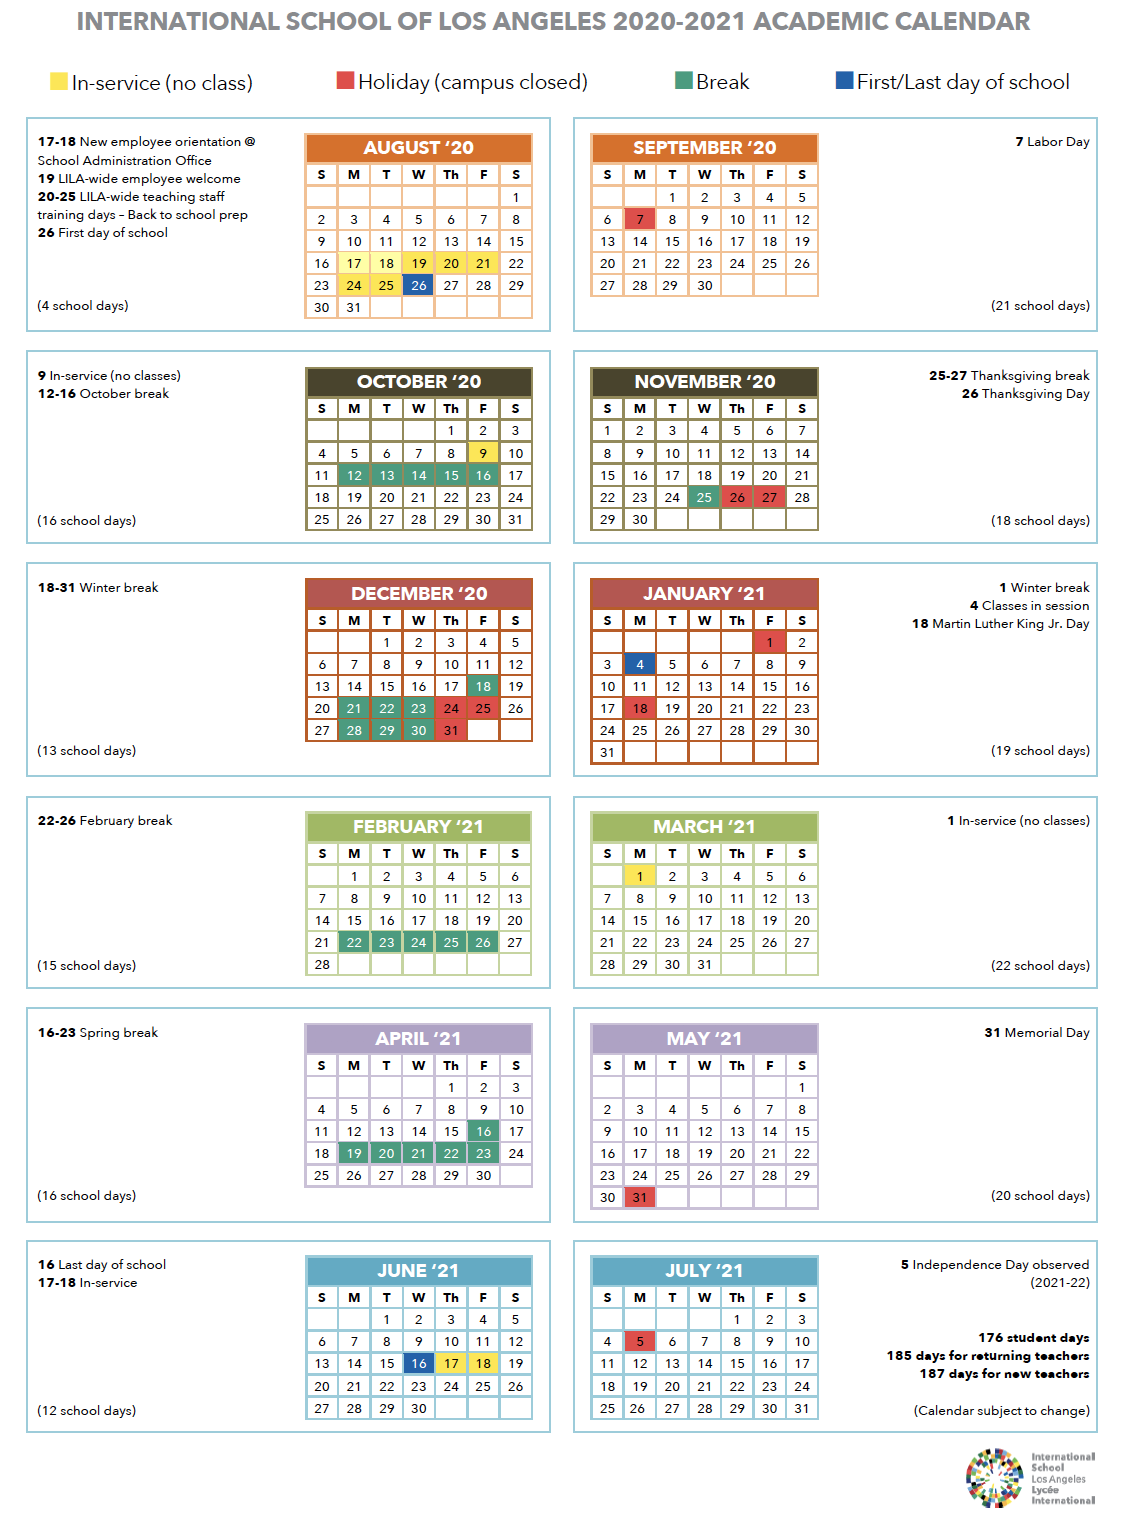 Calendar | International School Of Los Angeles Pertaining To Cal State Long Beach Academic Calendar 2021